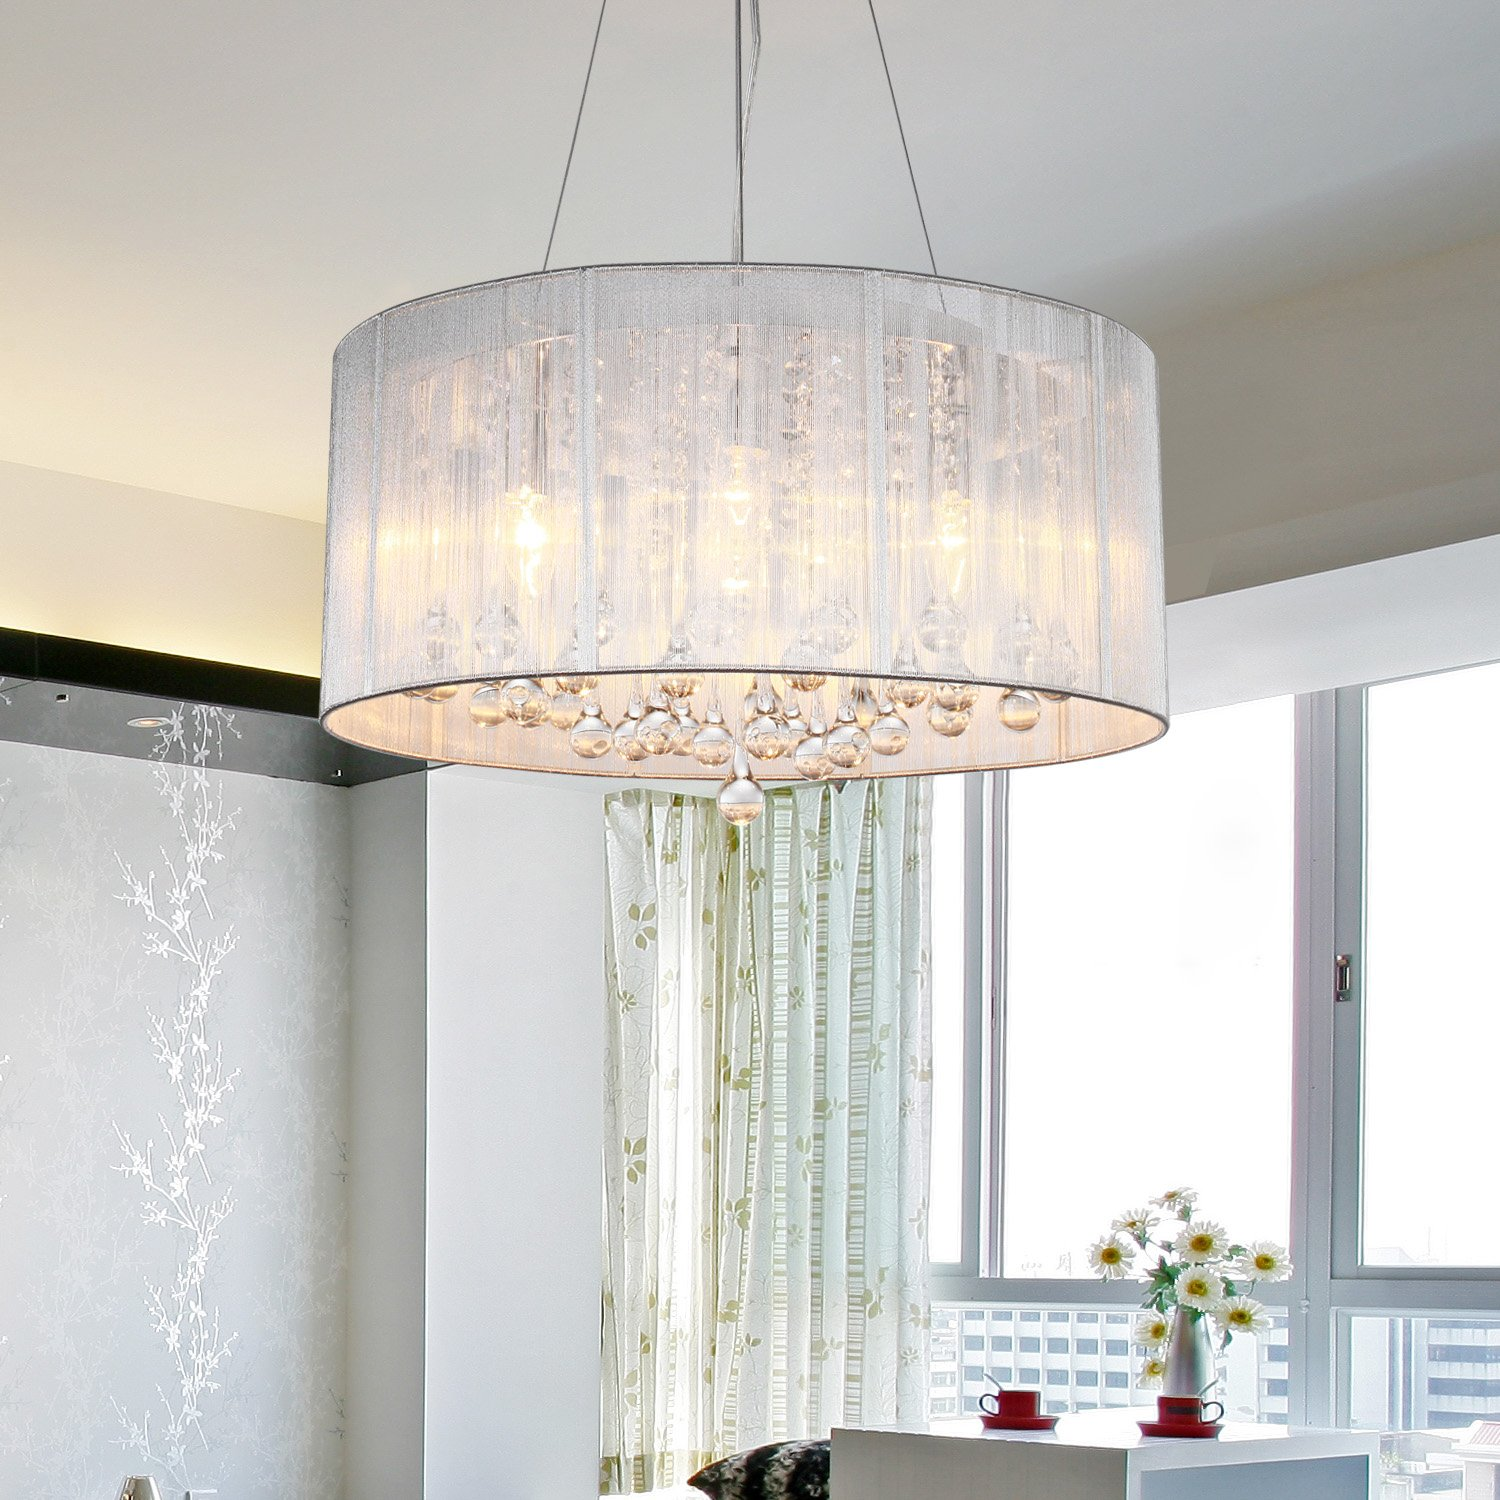 glass pendant inspirational lamp of for luxury replacement size full modern chandelier chandeliers lights shades photos